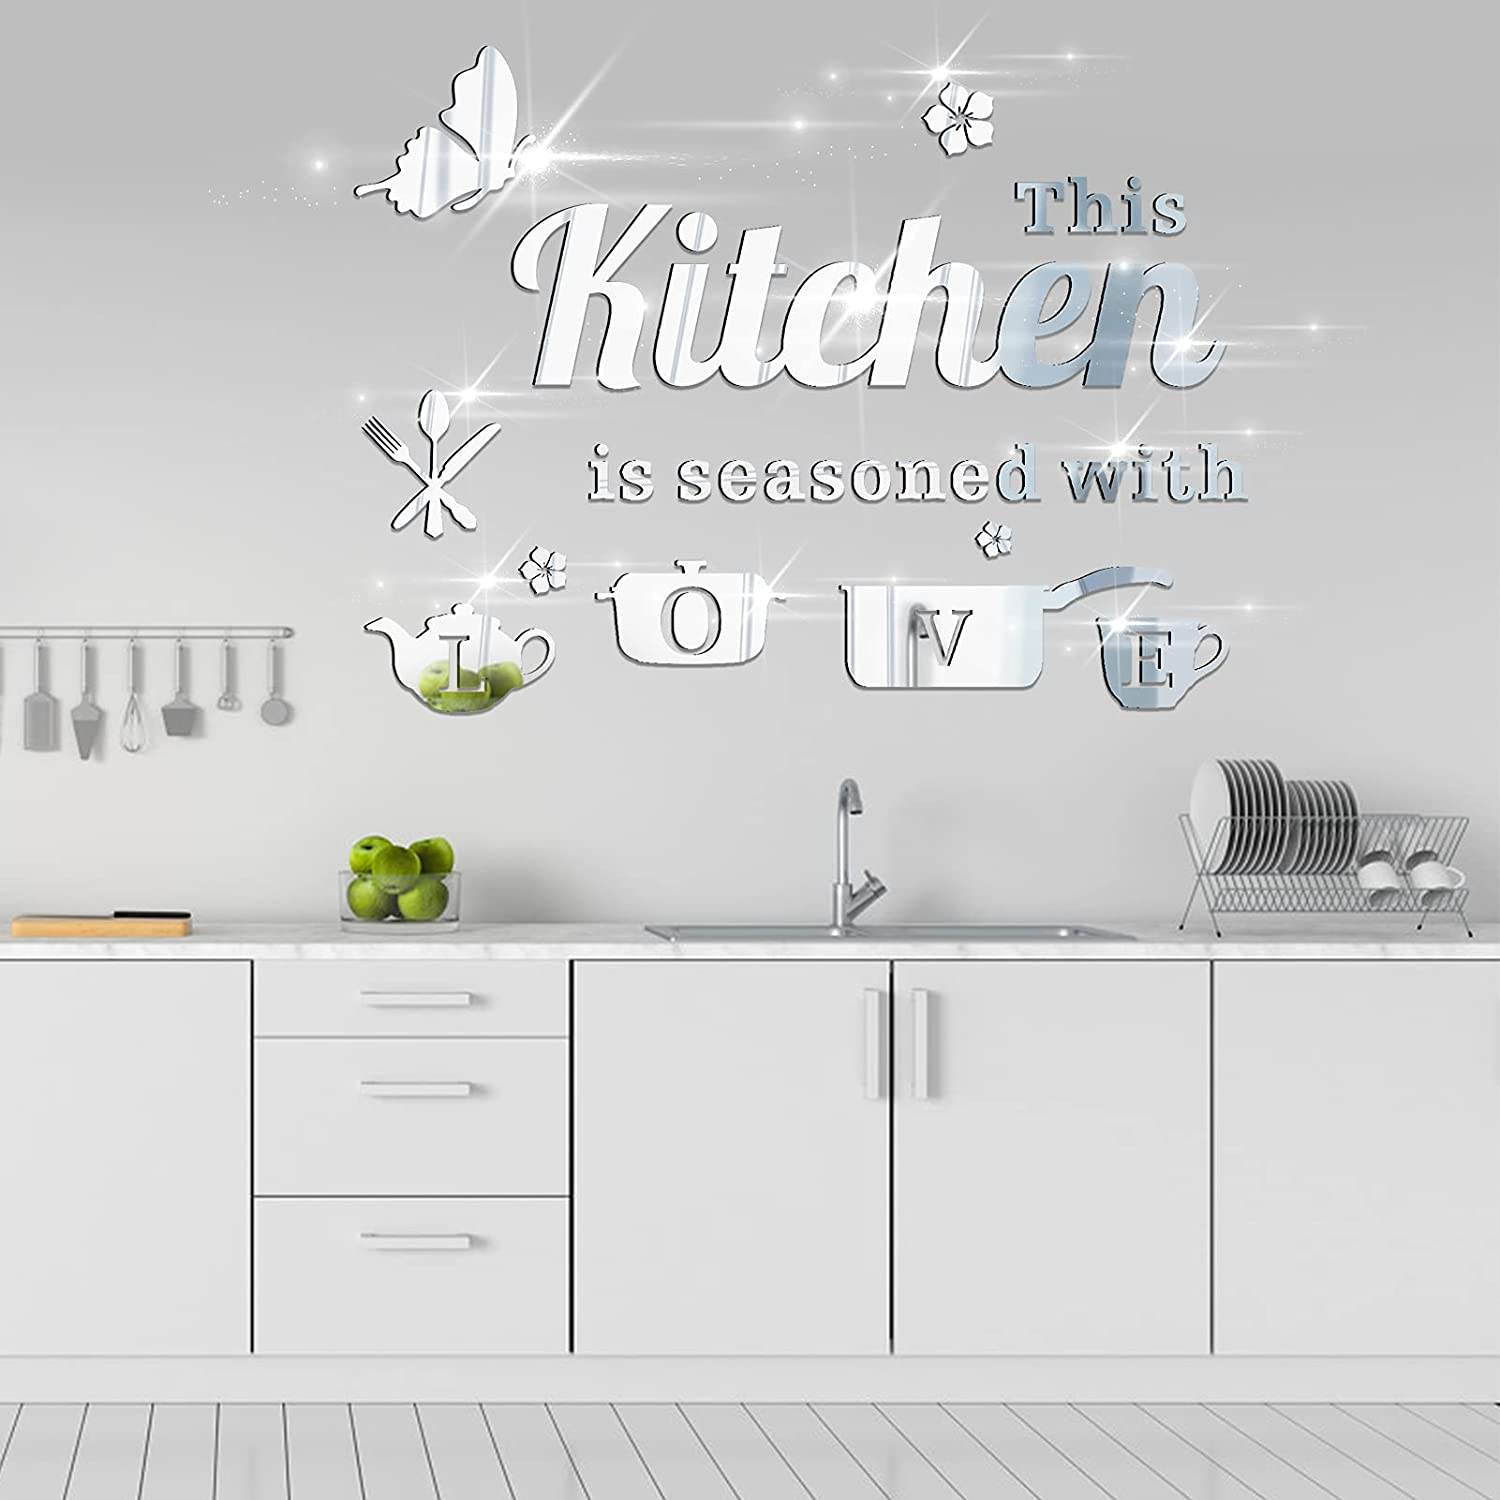 14Pcs Removable Acrylic Mirror Kitchen Wall Decal, KMOTASUO Ornamental Mural Stickers with Letters Kitchenware and Butterfly, Home Decor Decals for Living Room Dining Room Restaurant (Silver)